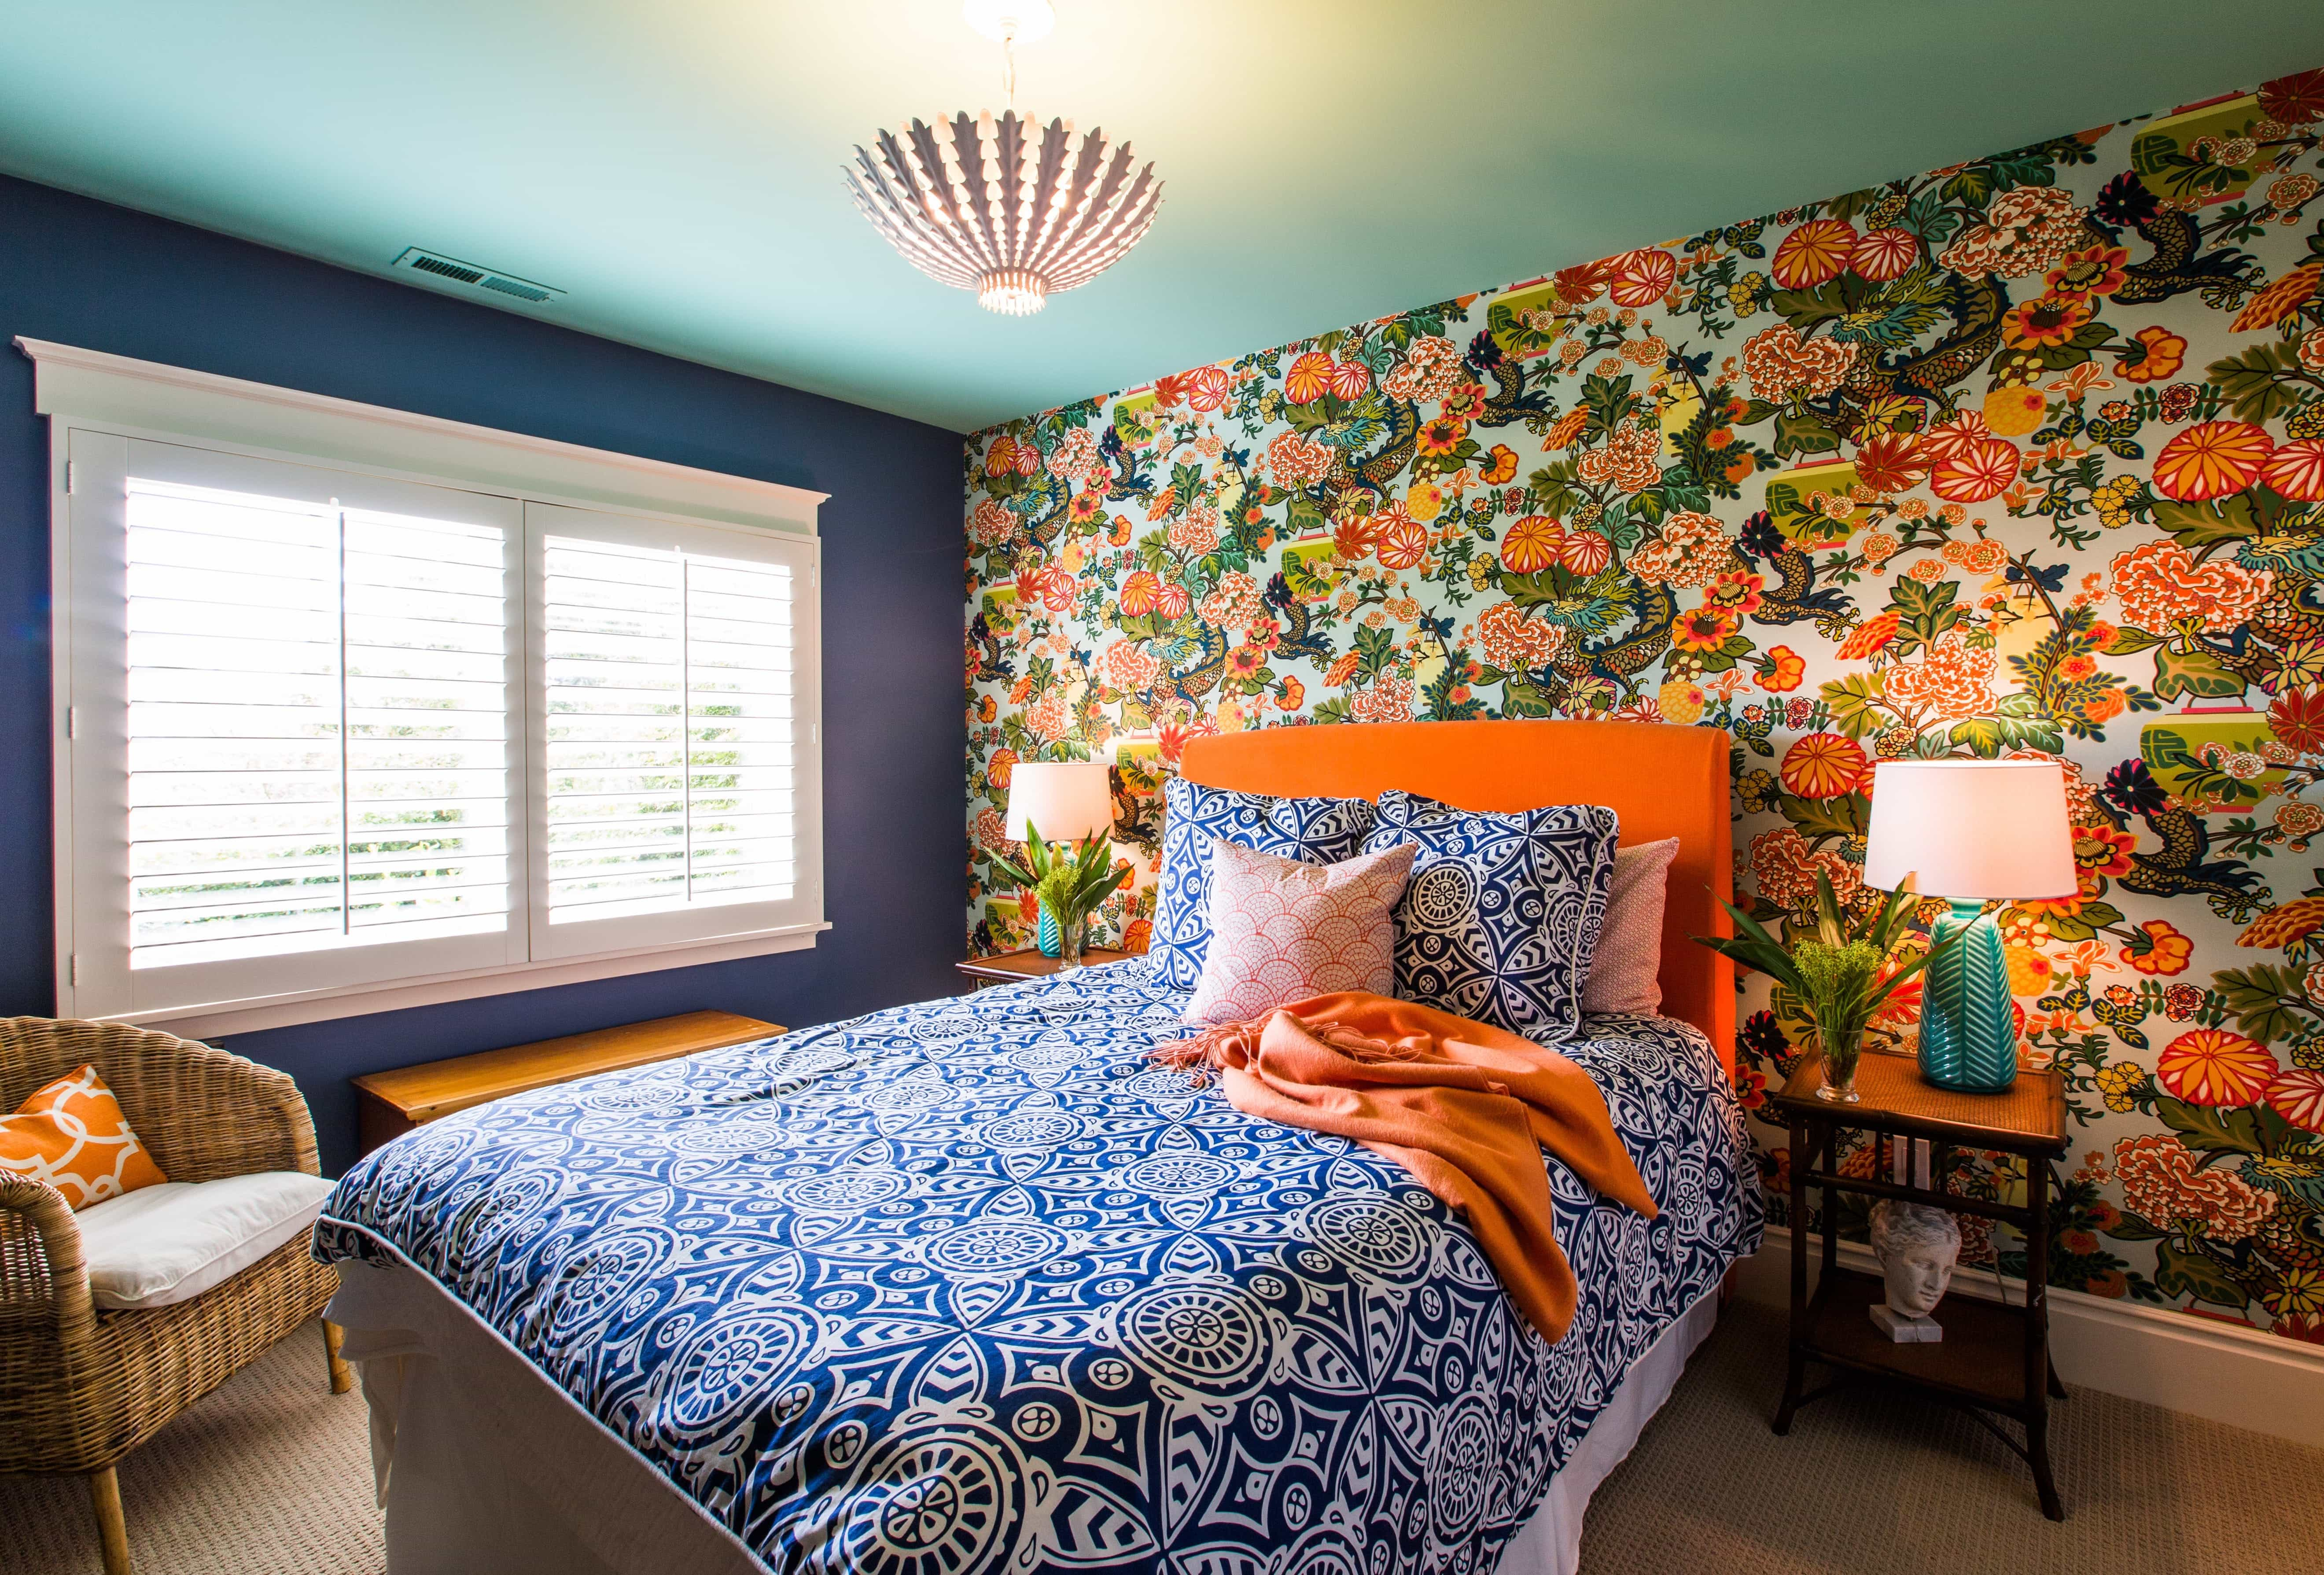 Bold Bedroom Pop Decoration With Floral Accent Wall (Image 9 of 28)